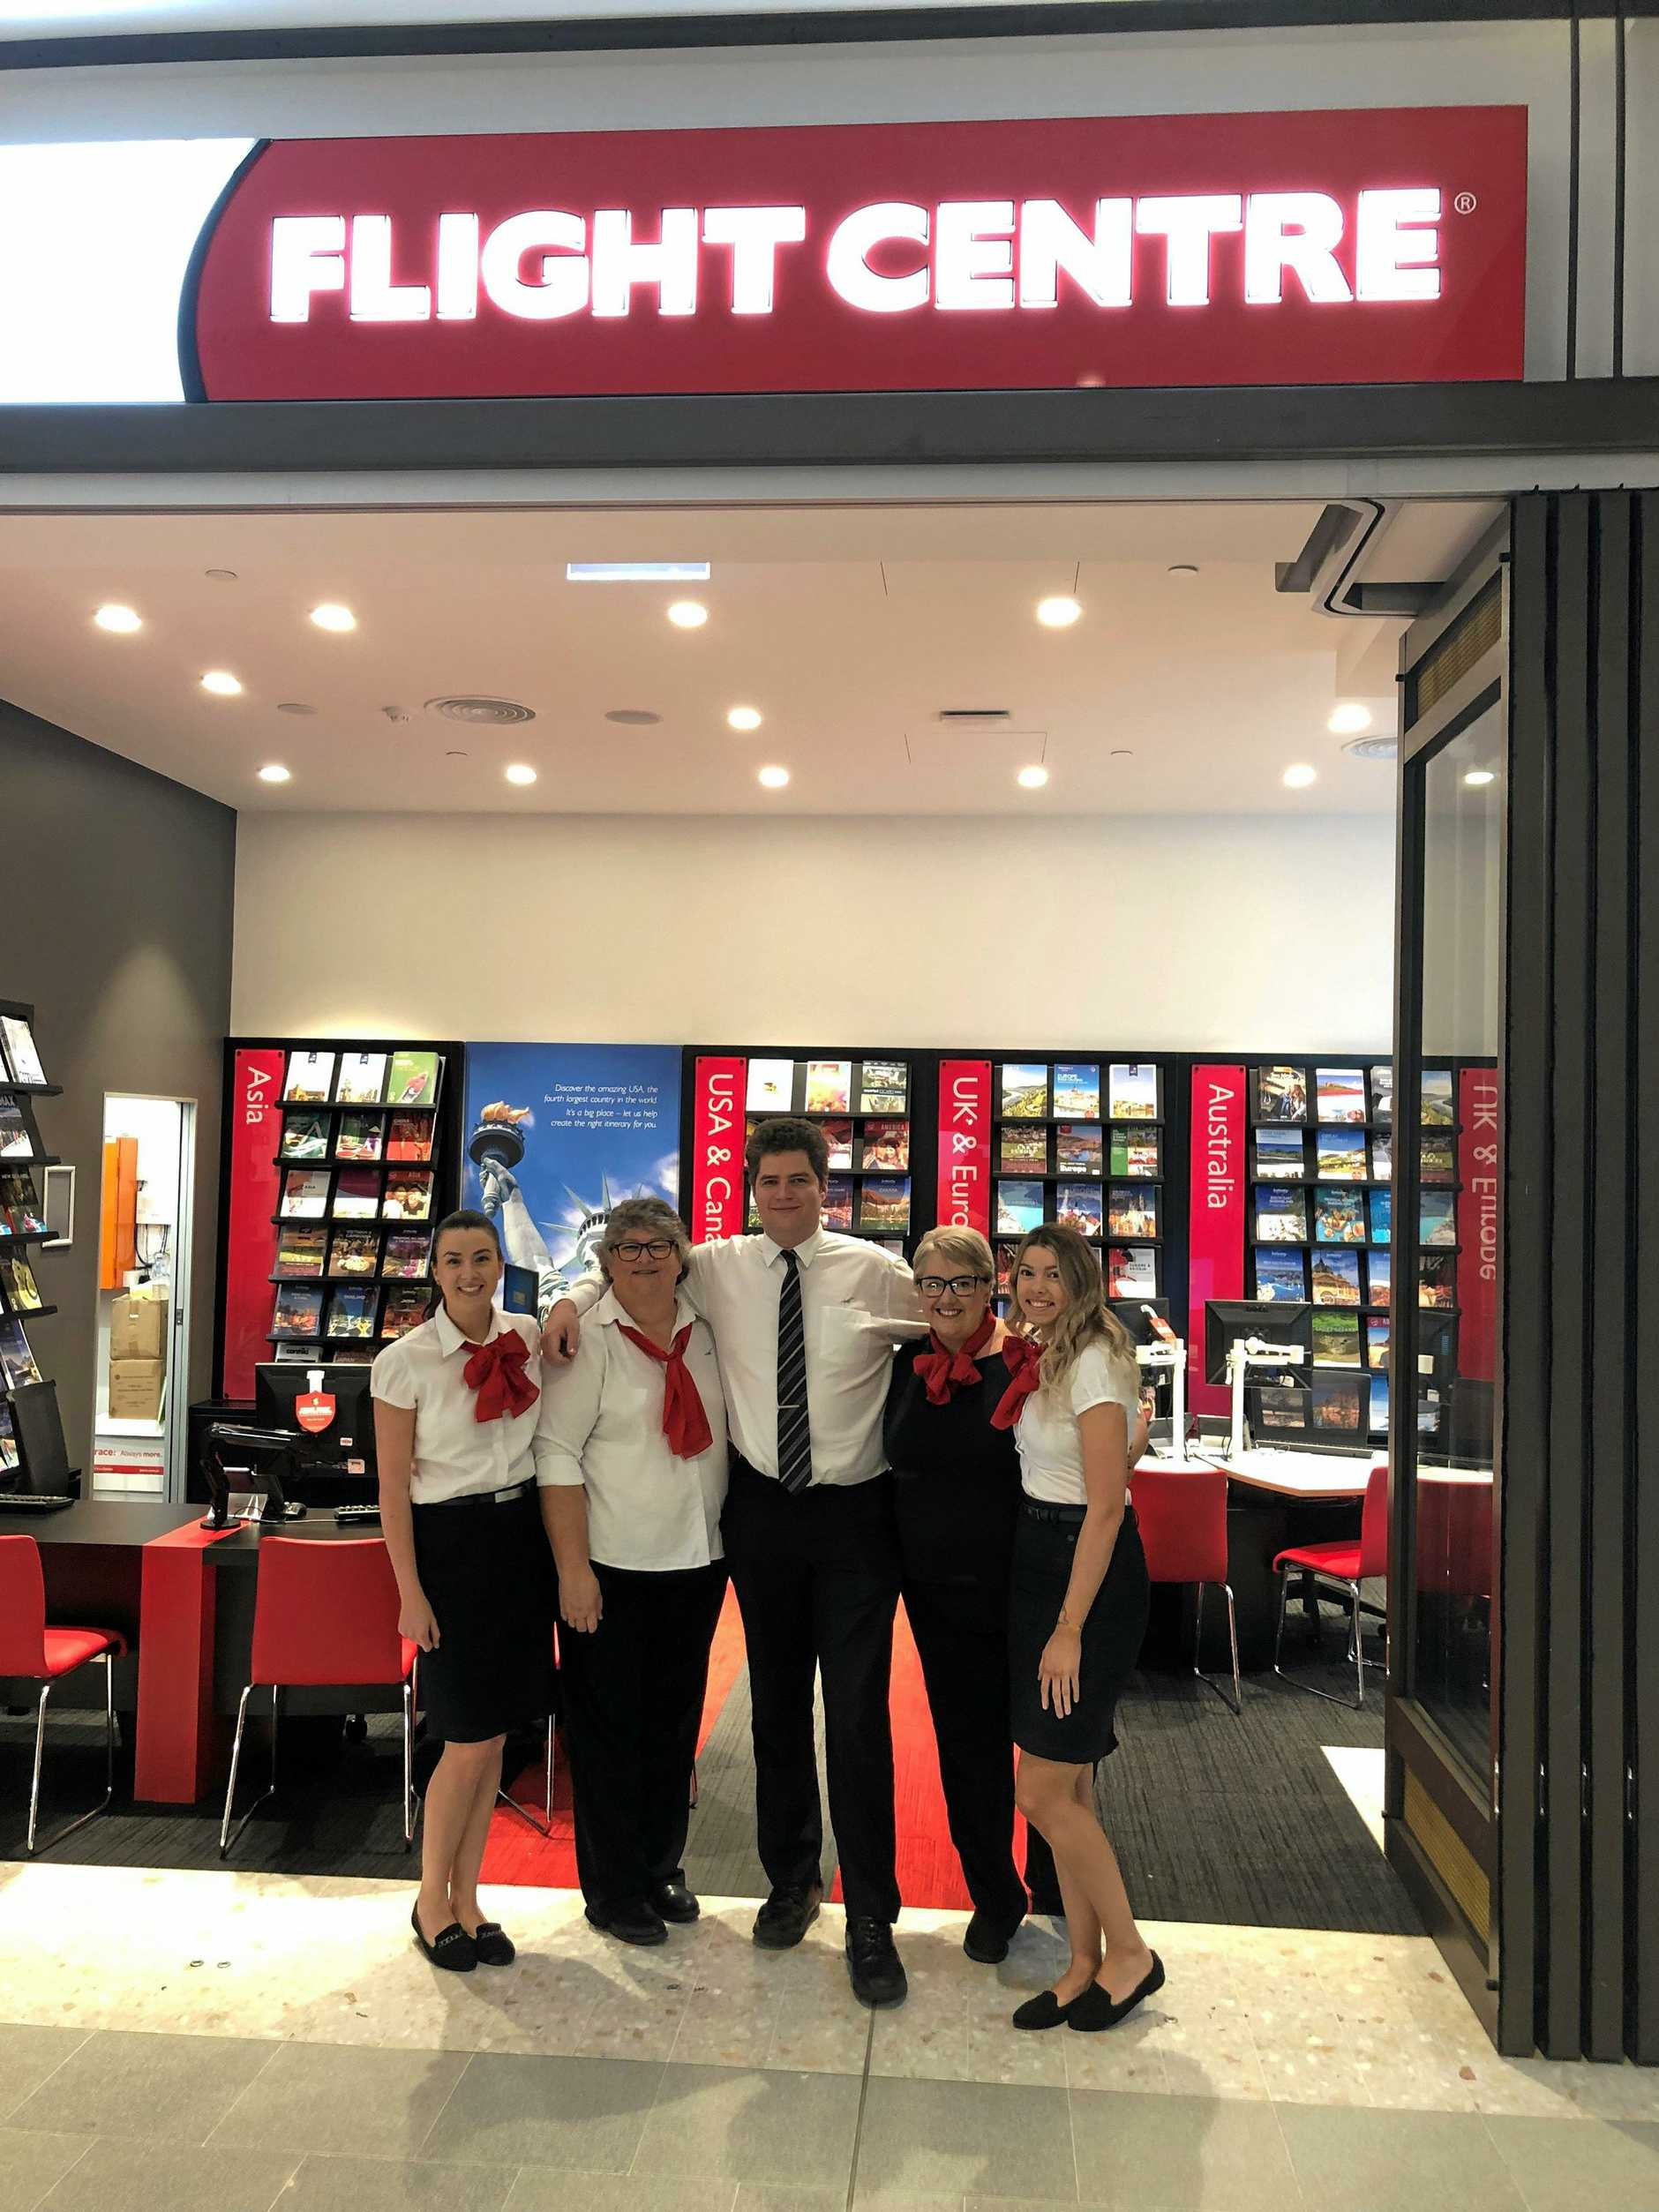 Excited to be opening in their new location are Flight Centre Toowoomba Tailor Made team members Tennille Smith, Kath Grandison, James Robarts, Angela Wilkinson and Taylor Southgate.